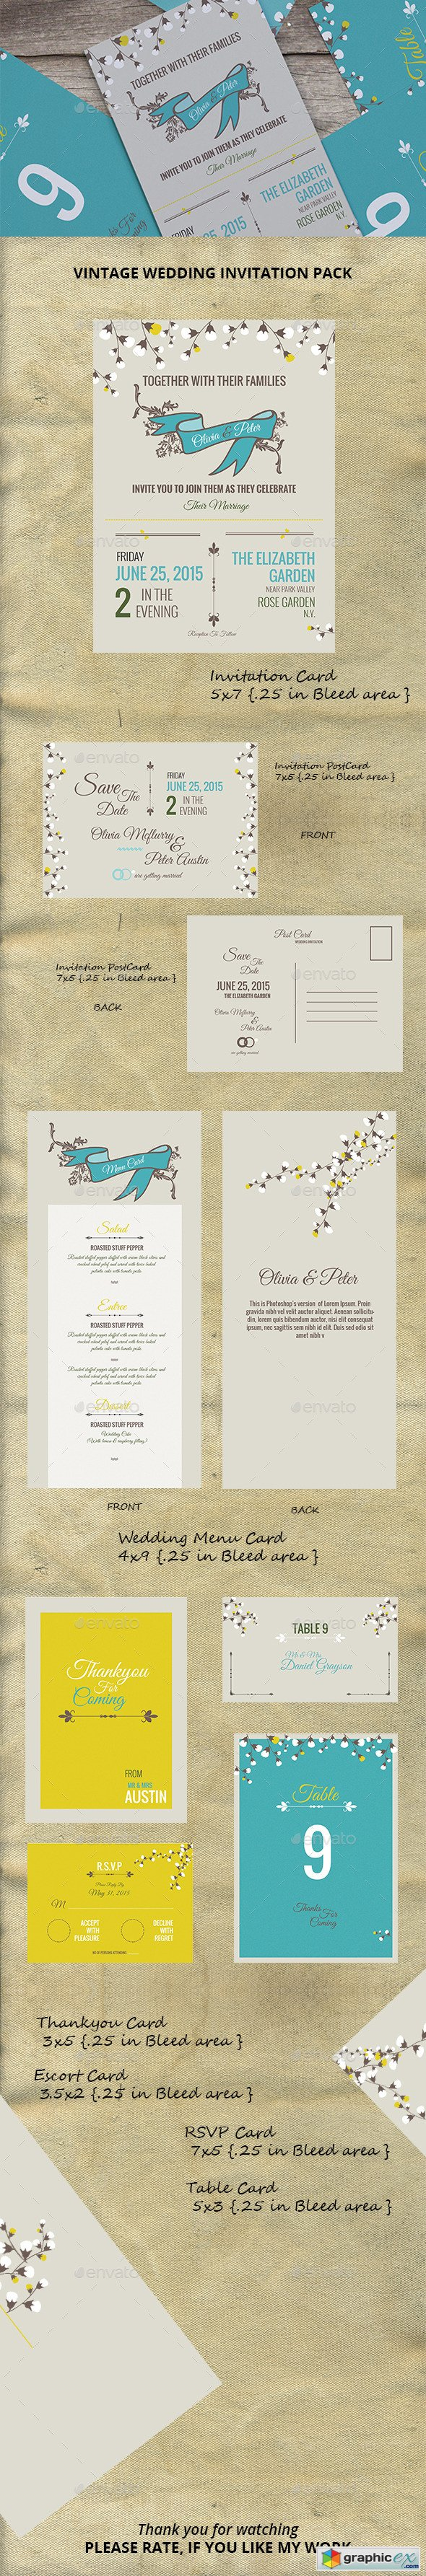 Postcards Bussiness Card Page 89 Free Download Vector